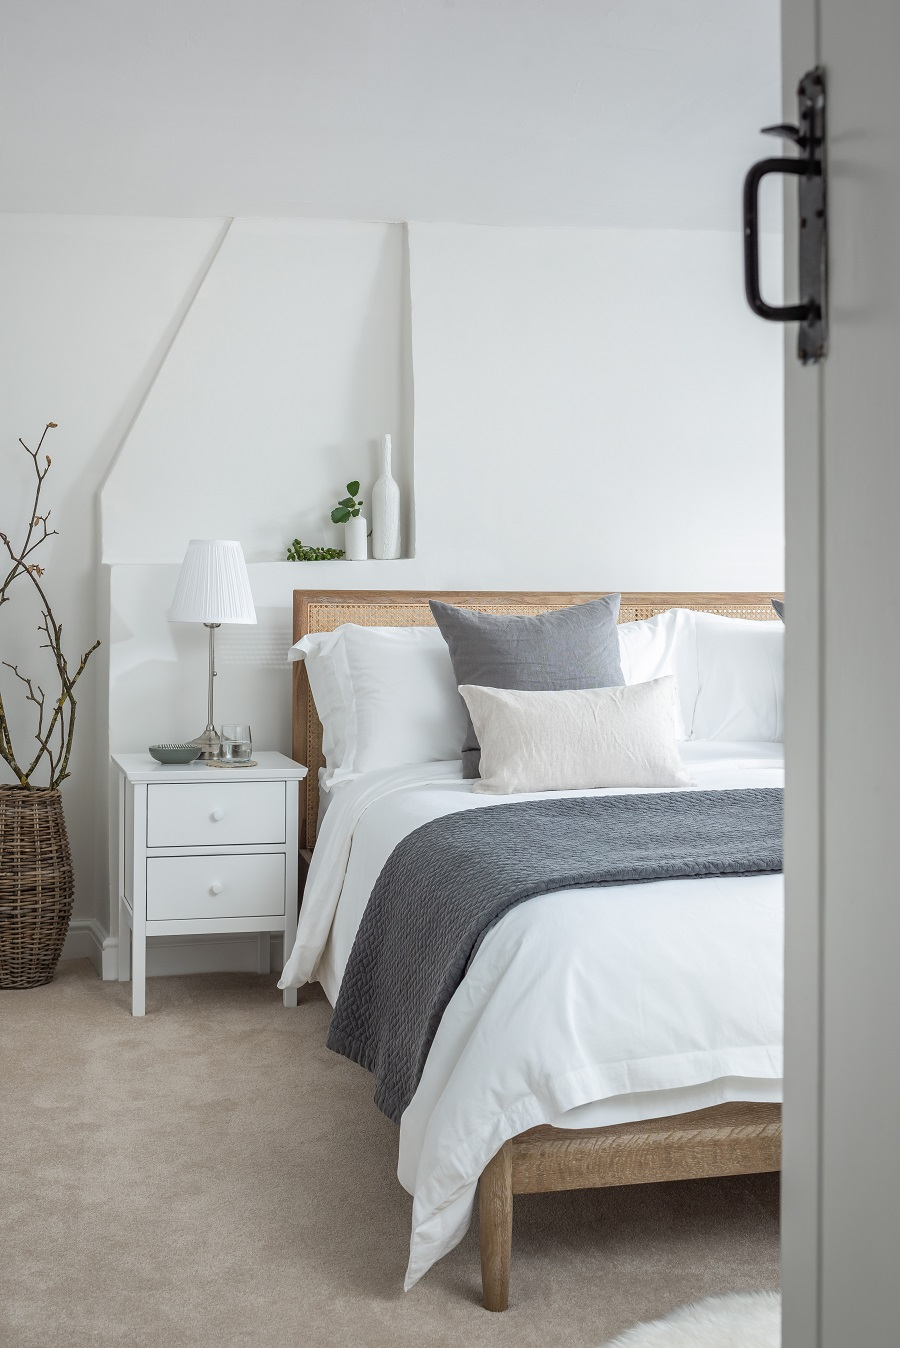 If the ceiling is too low for fitted wall units, put up a shelf instead. I happen to prefer this in rooms that do have enough ceiling height too. Keep the cottage theme going with wooden worktops, metro wall tiles and handy baskets.